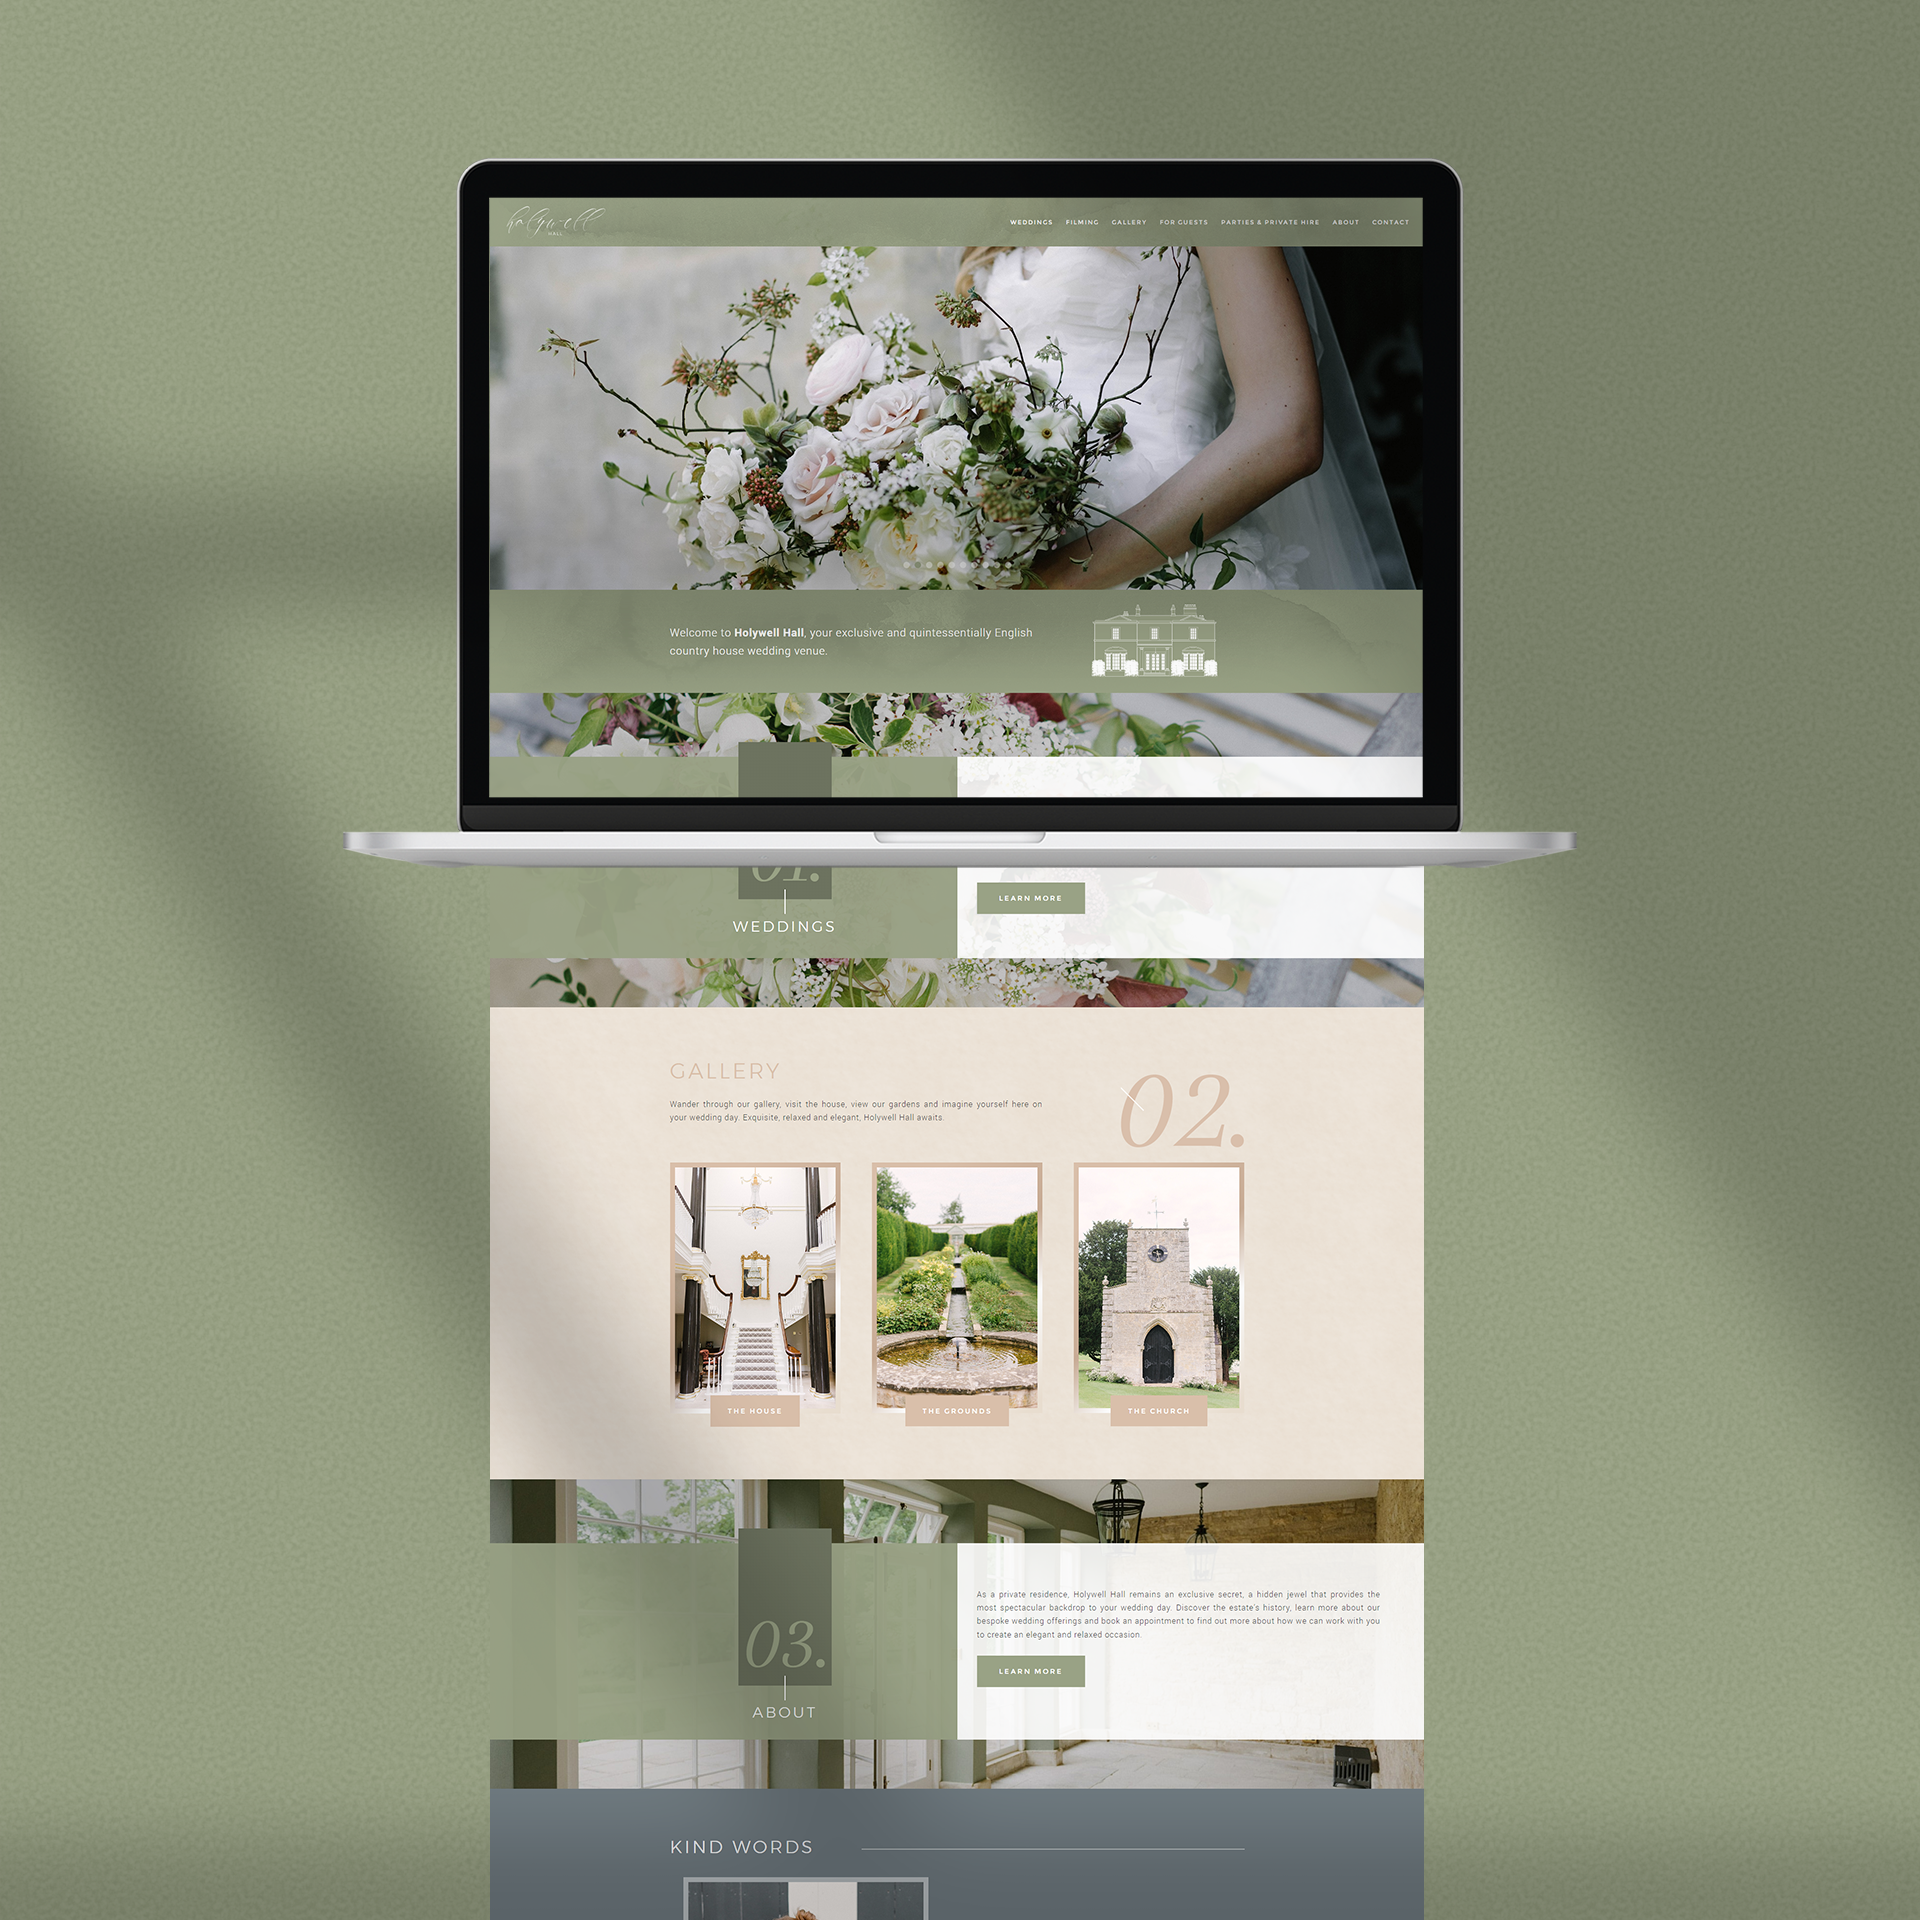 Holywell Hall - Website Design